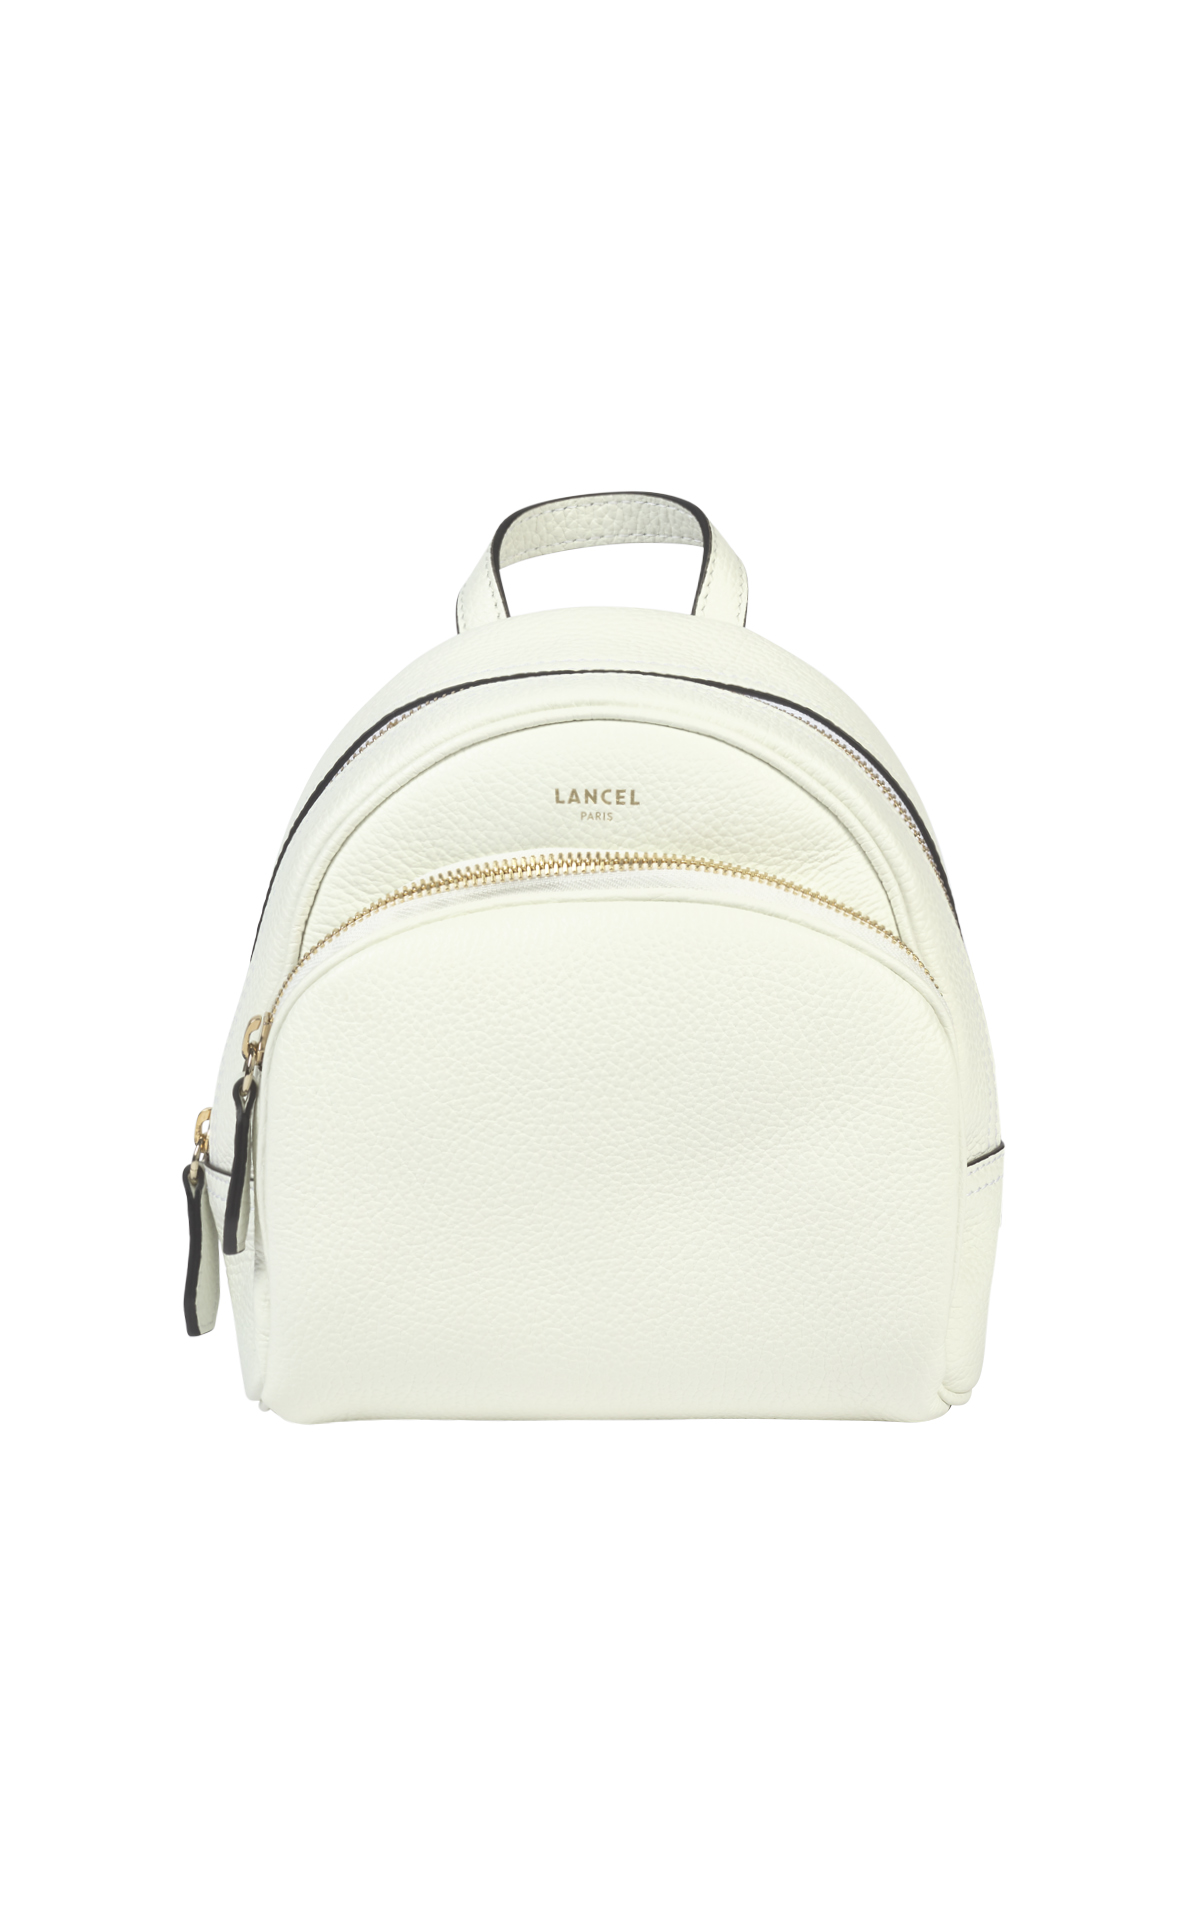 White small bag Lancel